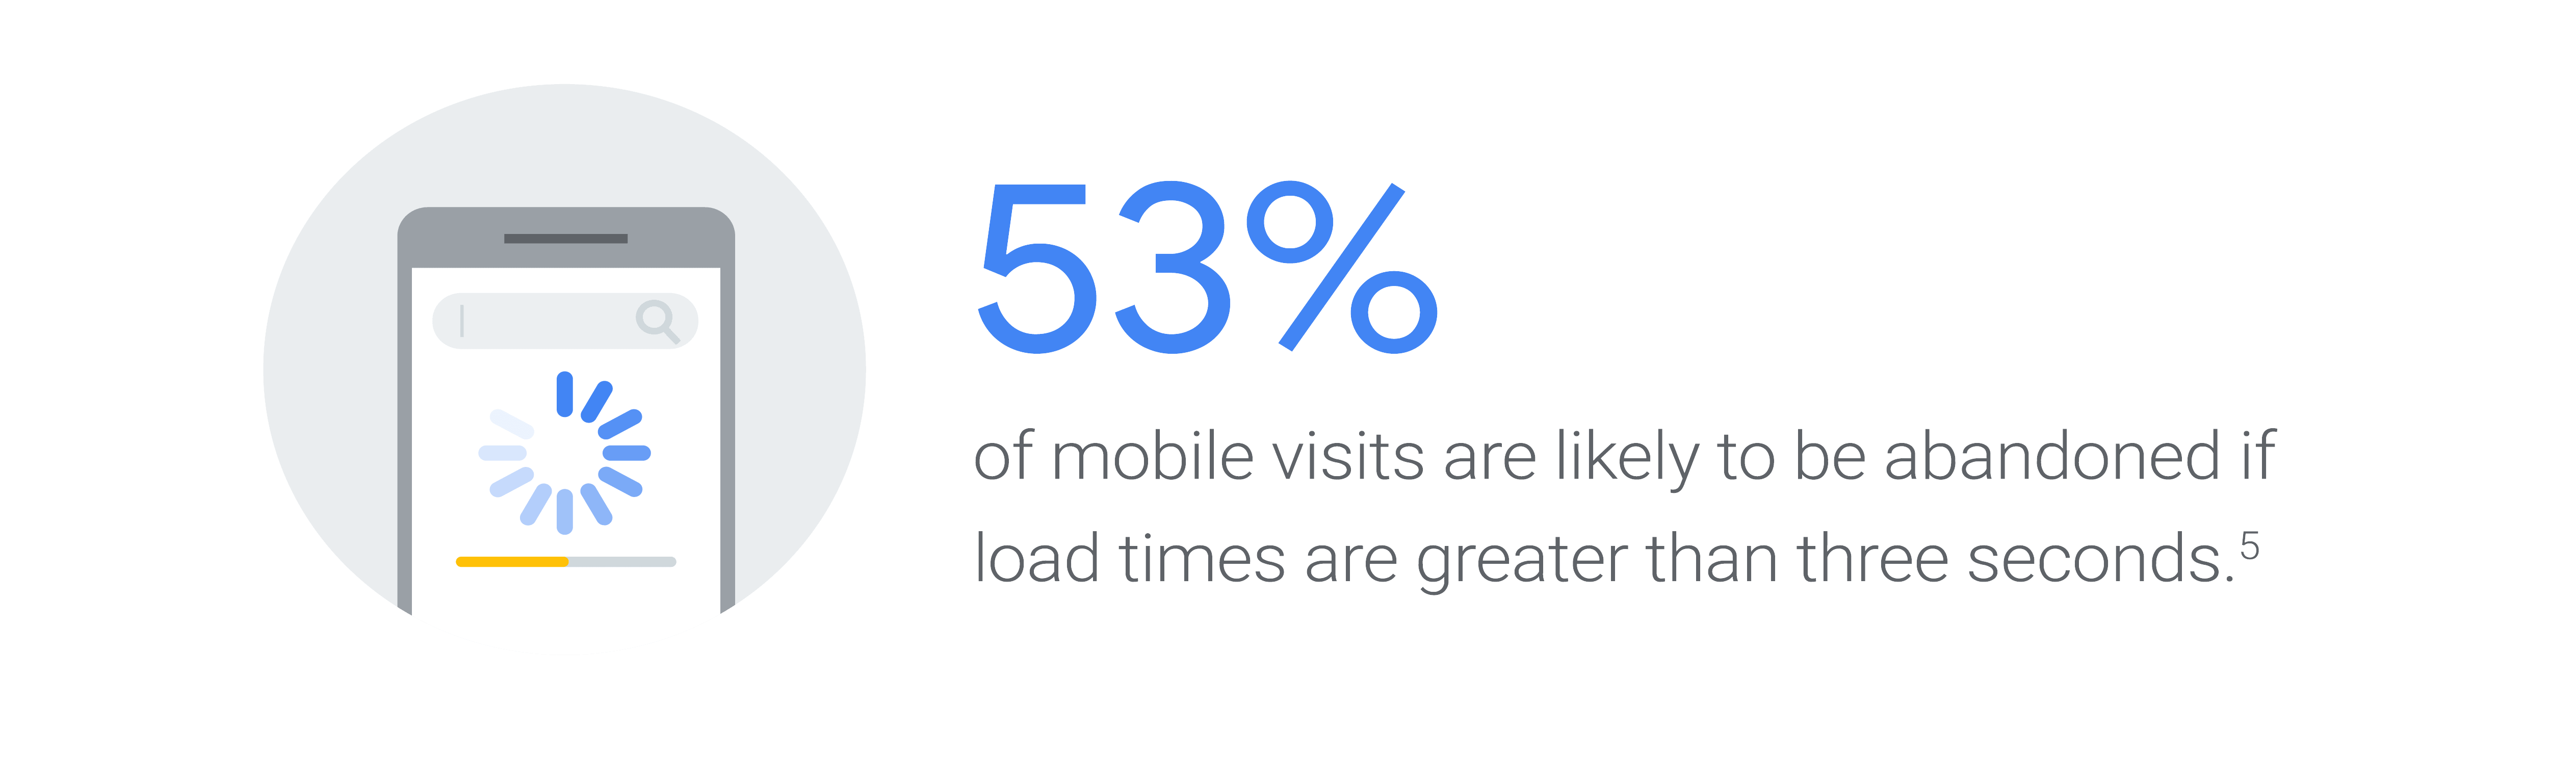 53% Mobile Visits are abandoned if load time greater than 3 seconds